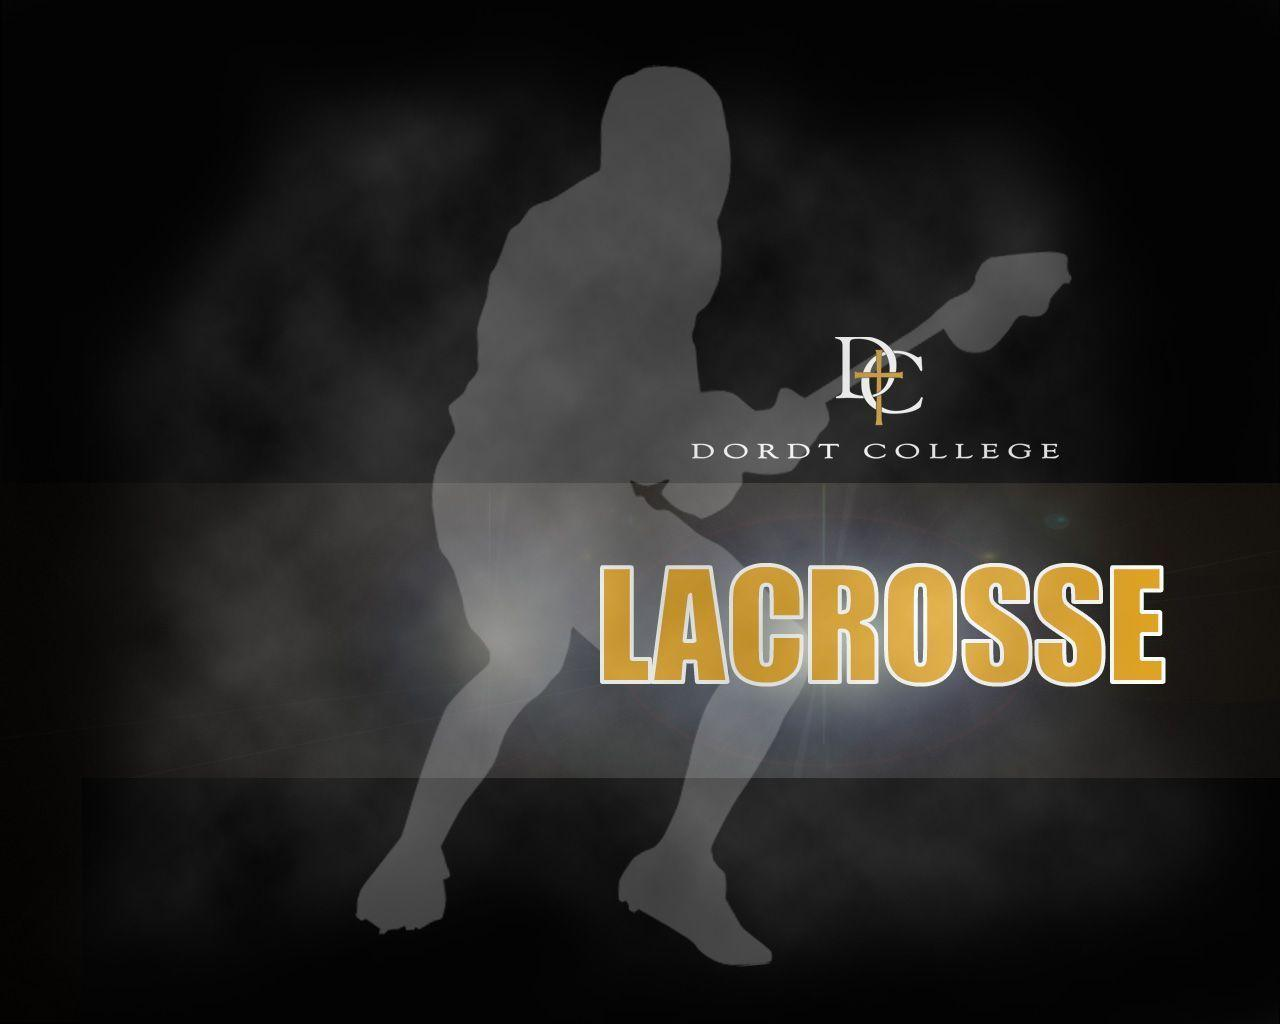 lacrosse wallpaper wallpapers - photo #10